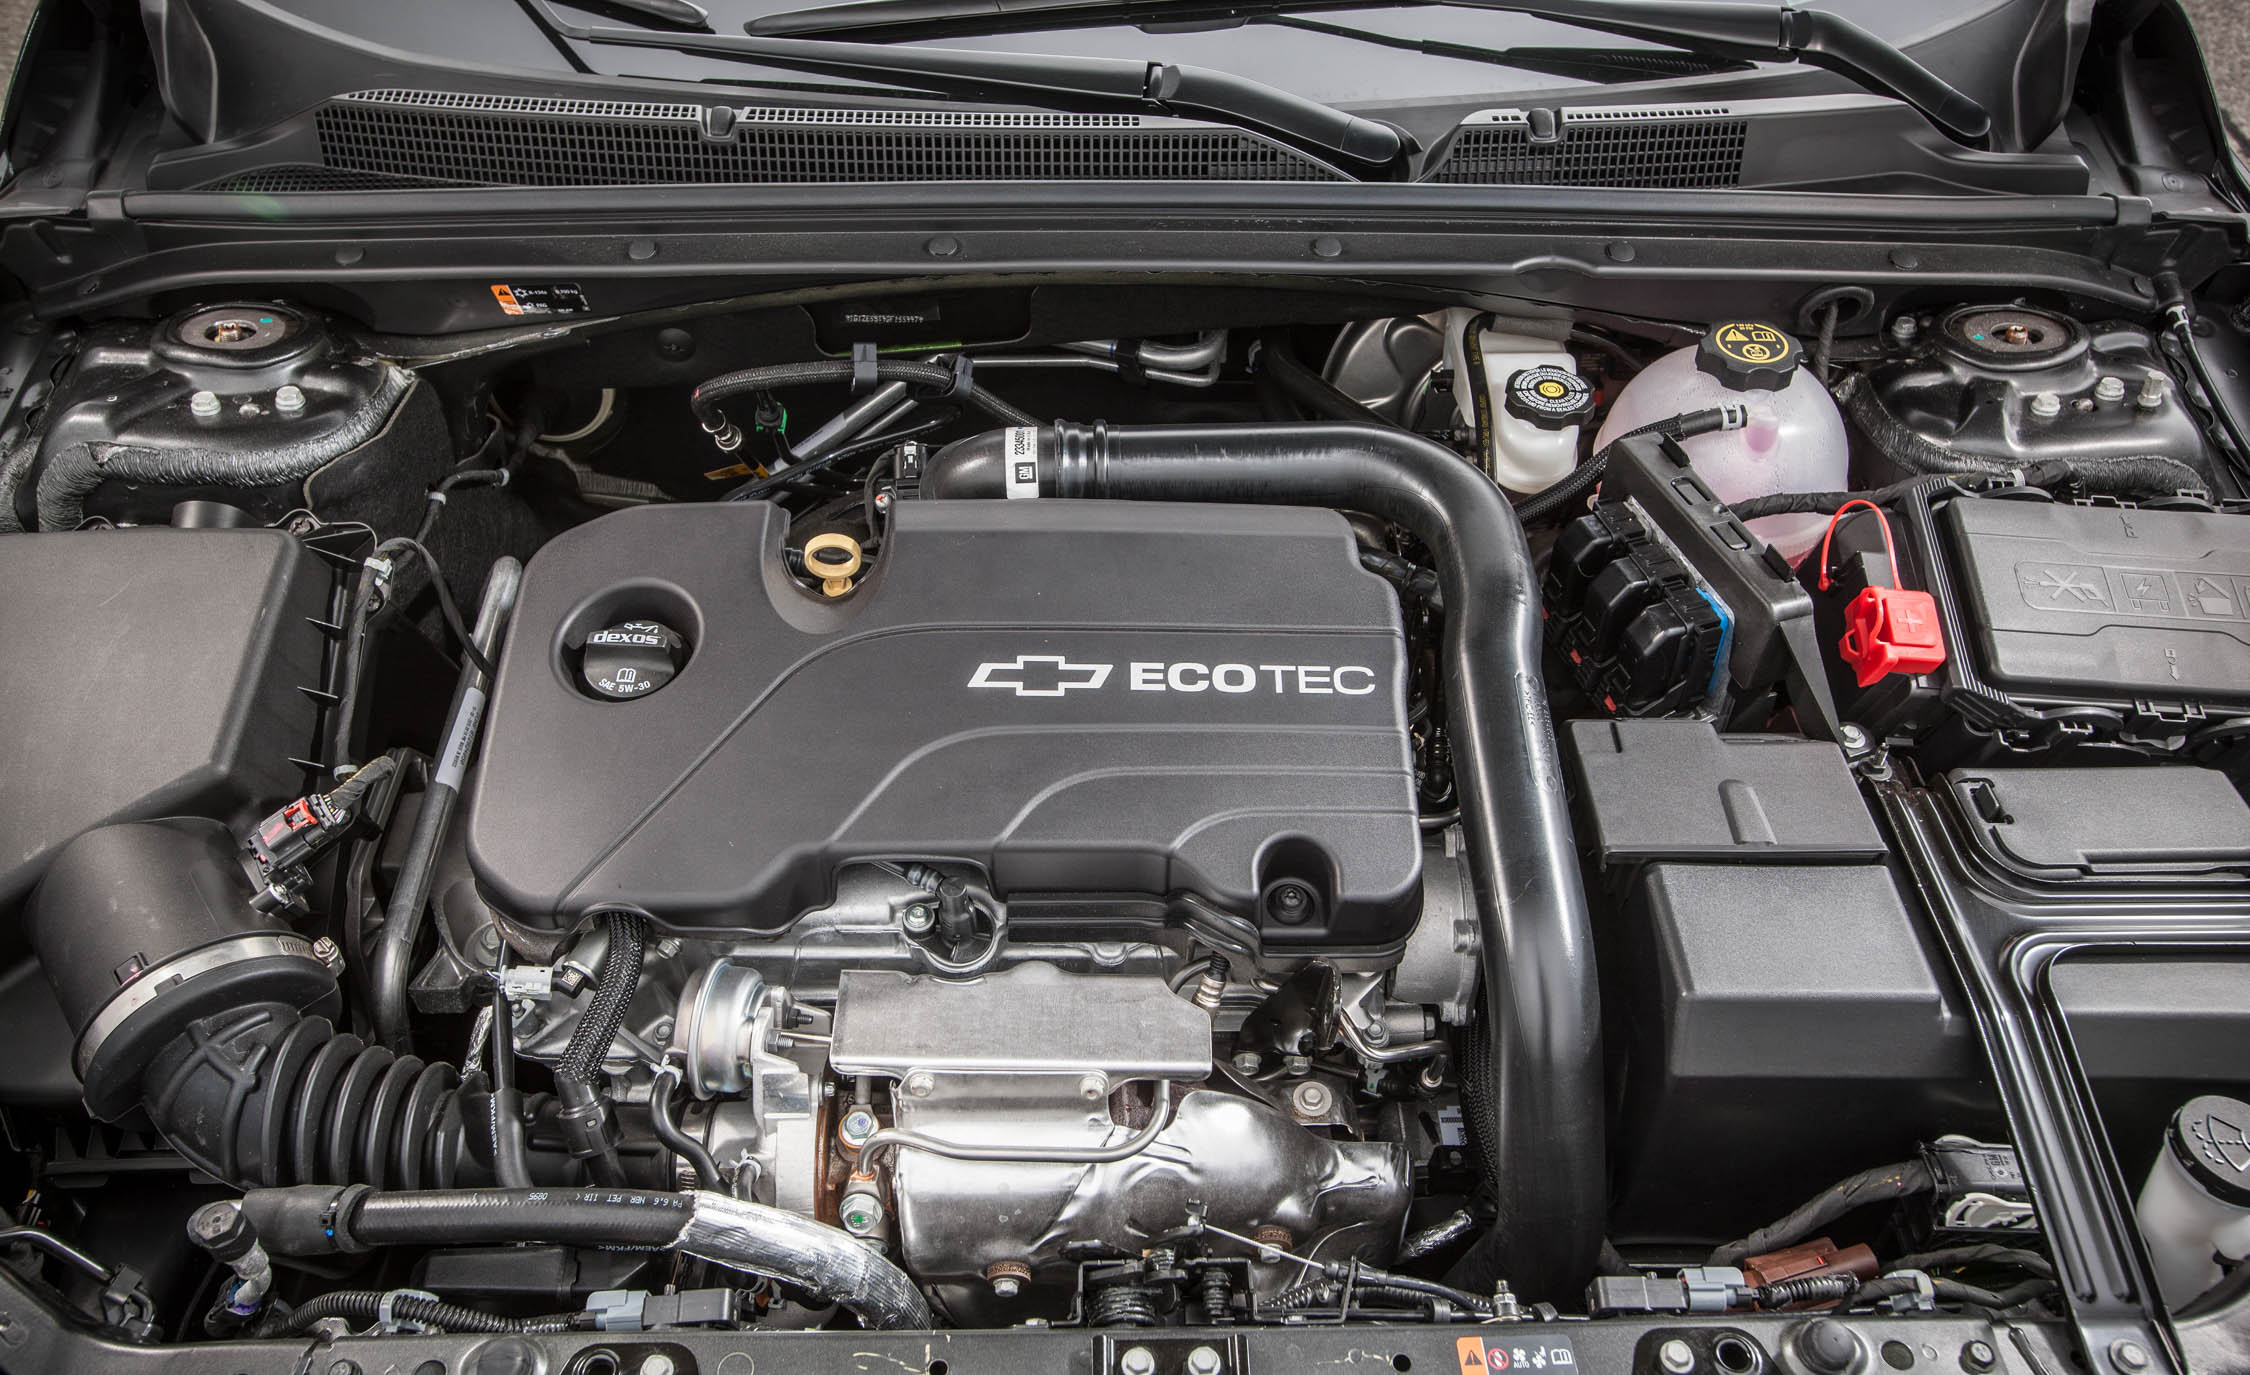 2016 Chevrolet Malibu LT 1.5T Turbocharged 1.5-Liter Engine